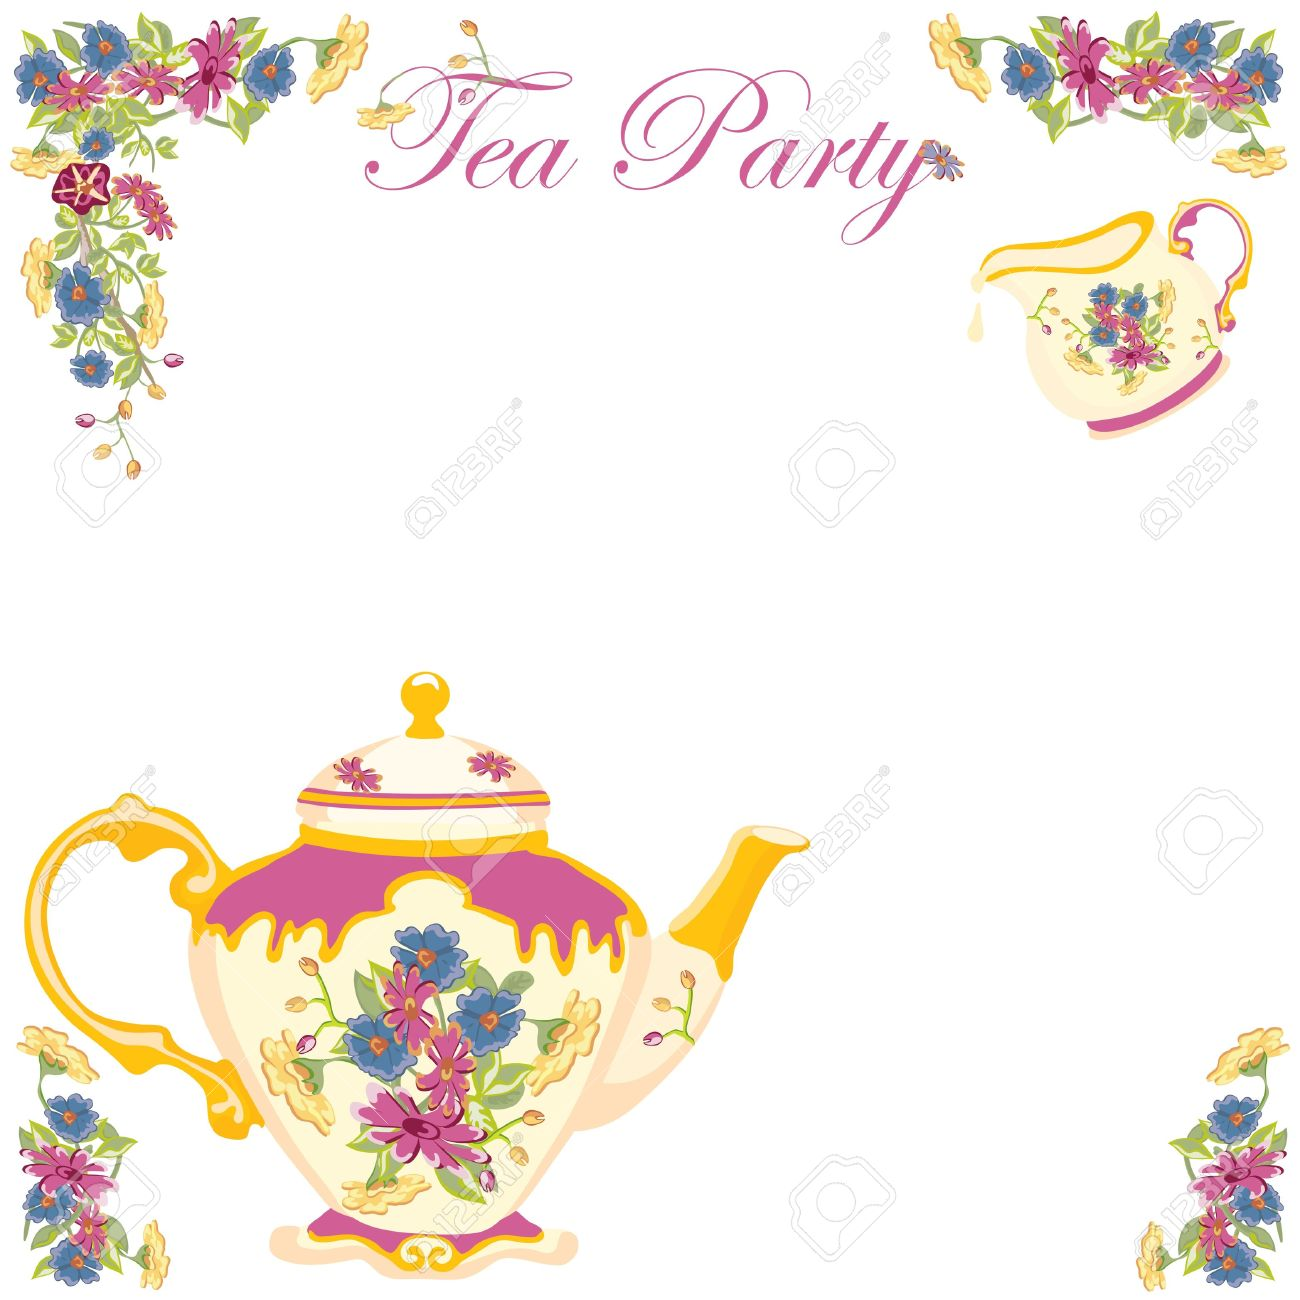 Tea Party Border Clipart.